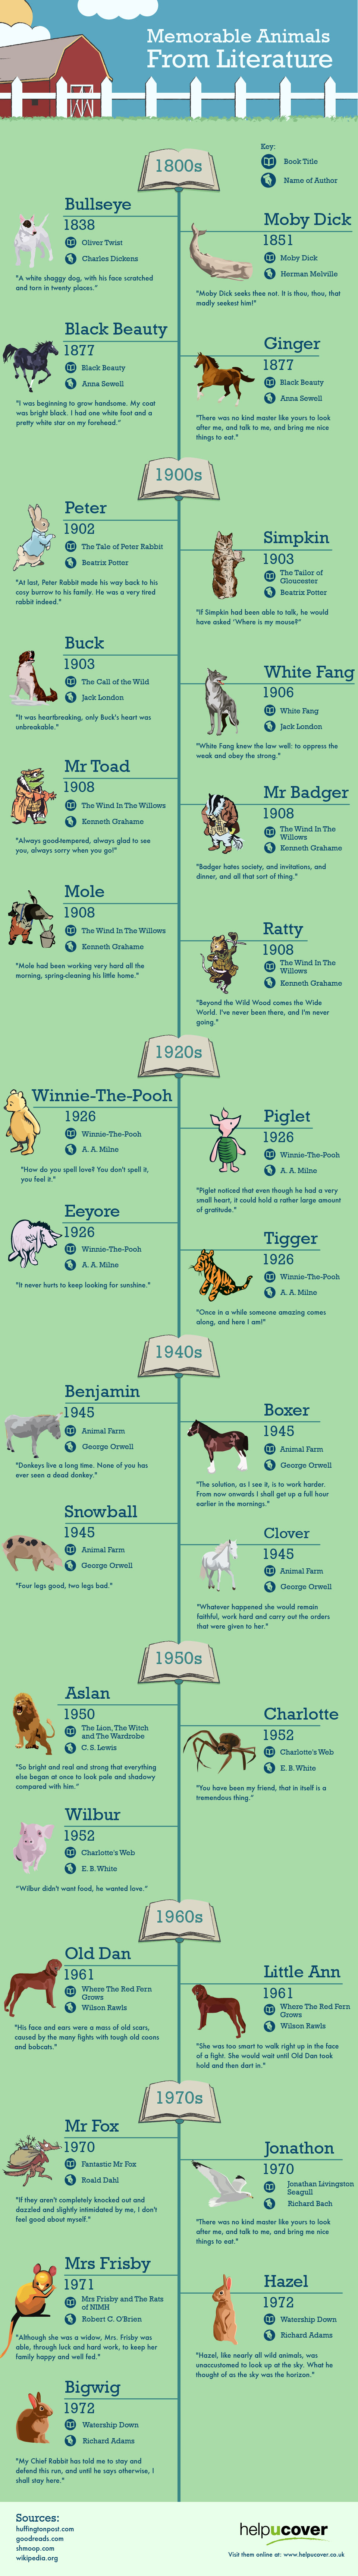 Memorable animals from literature